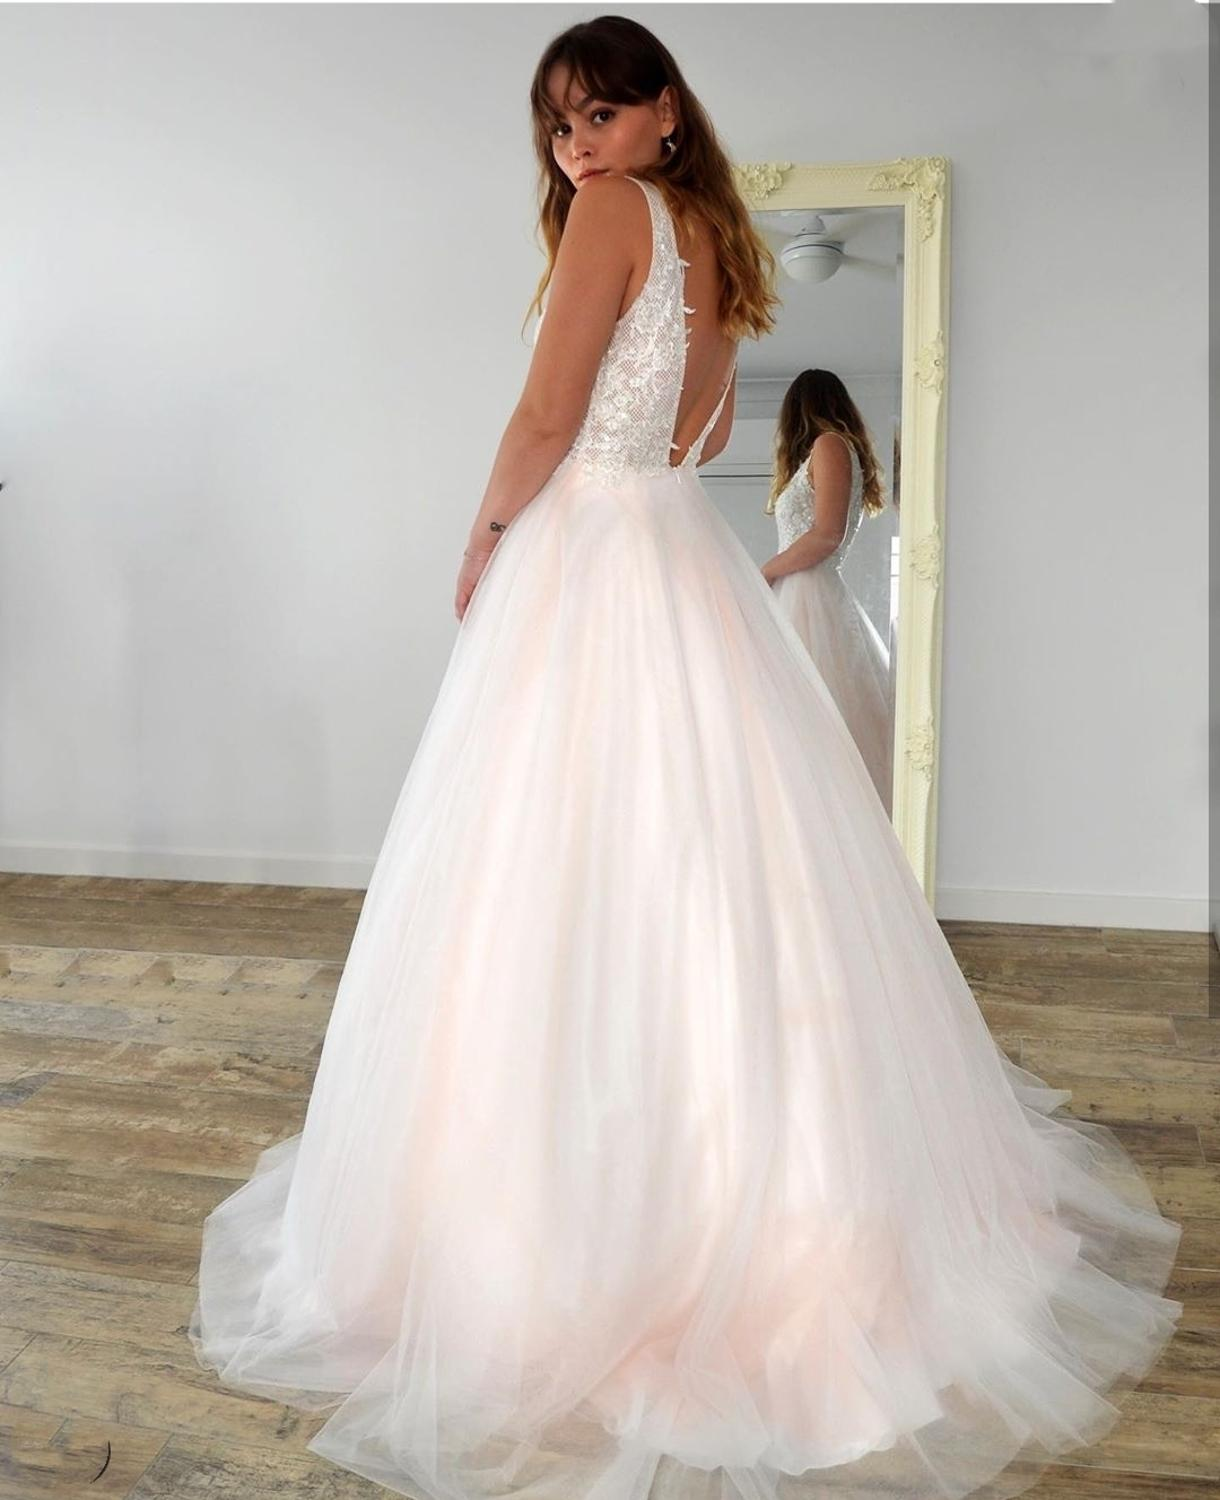 2021 Wedding Dresses Deep V-Neck A-Line Lace Appliques Tank Backless Charming Sweep Train Floor Length  Bridal Gowns Custom Made